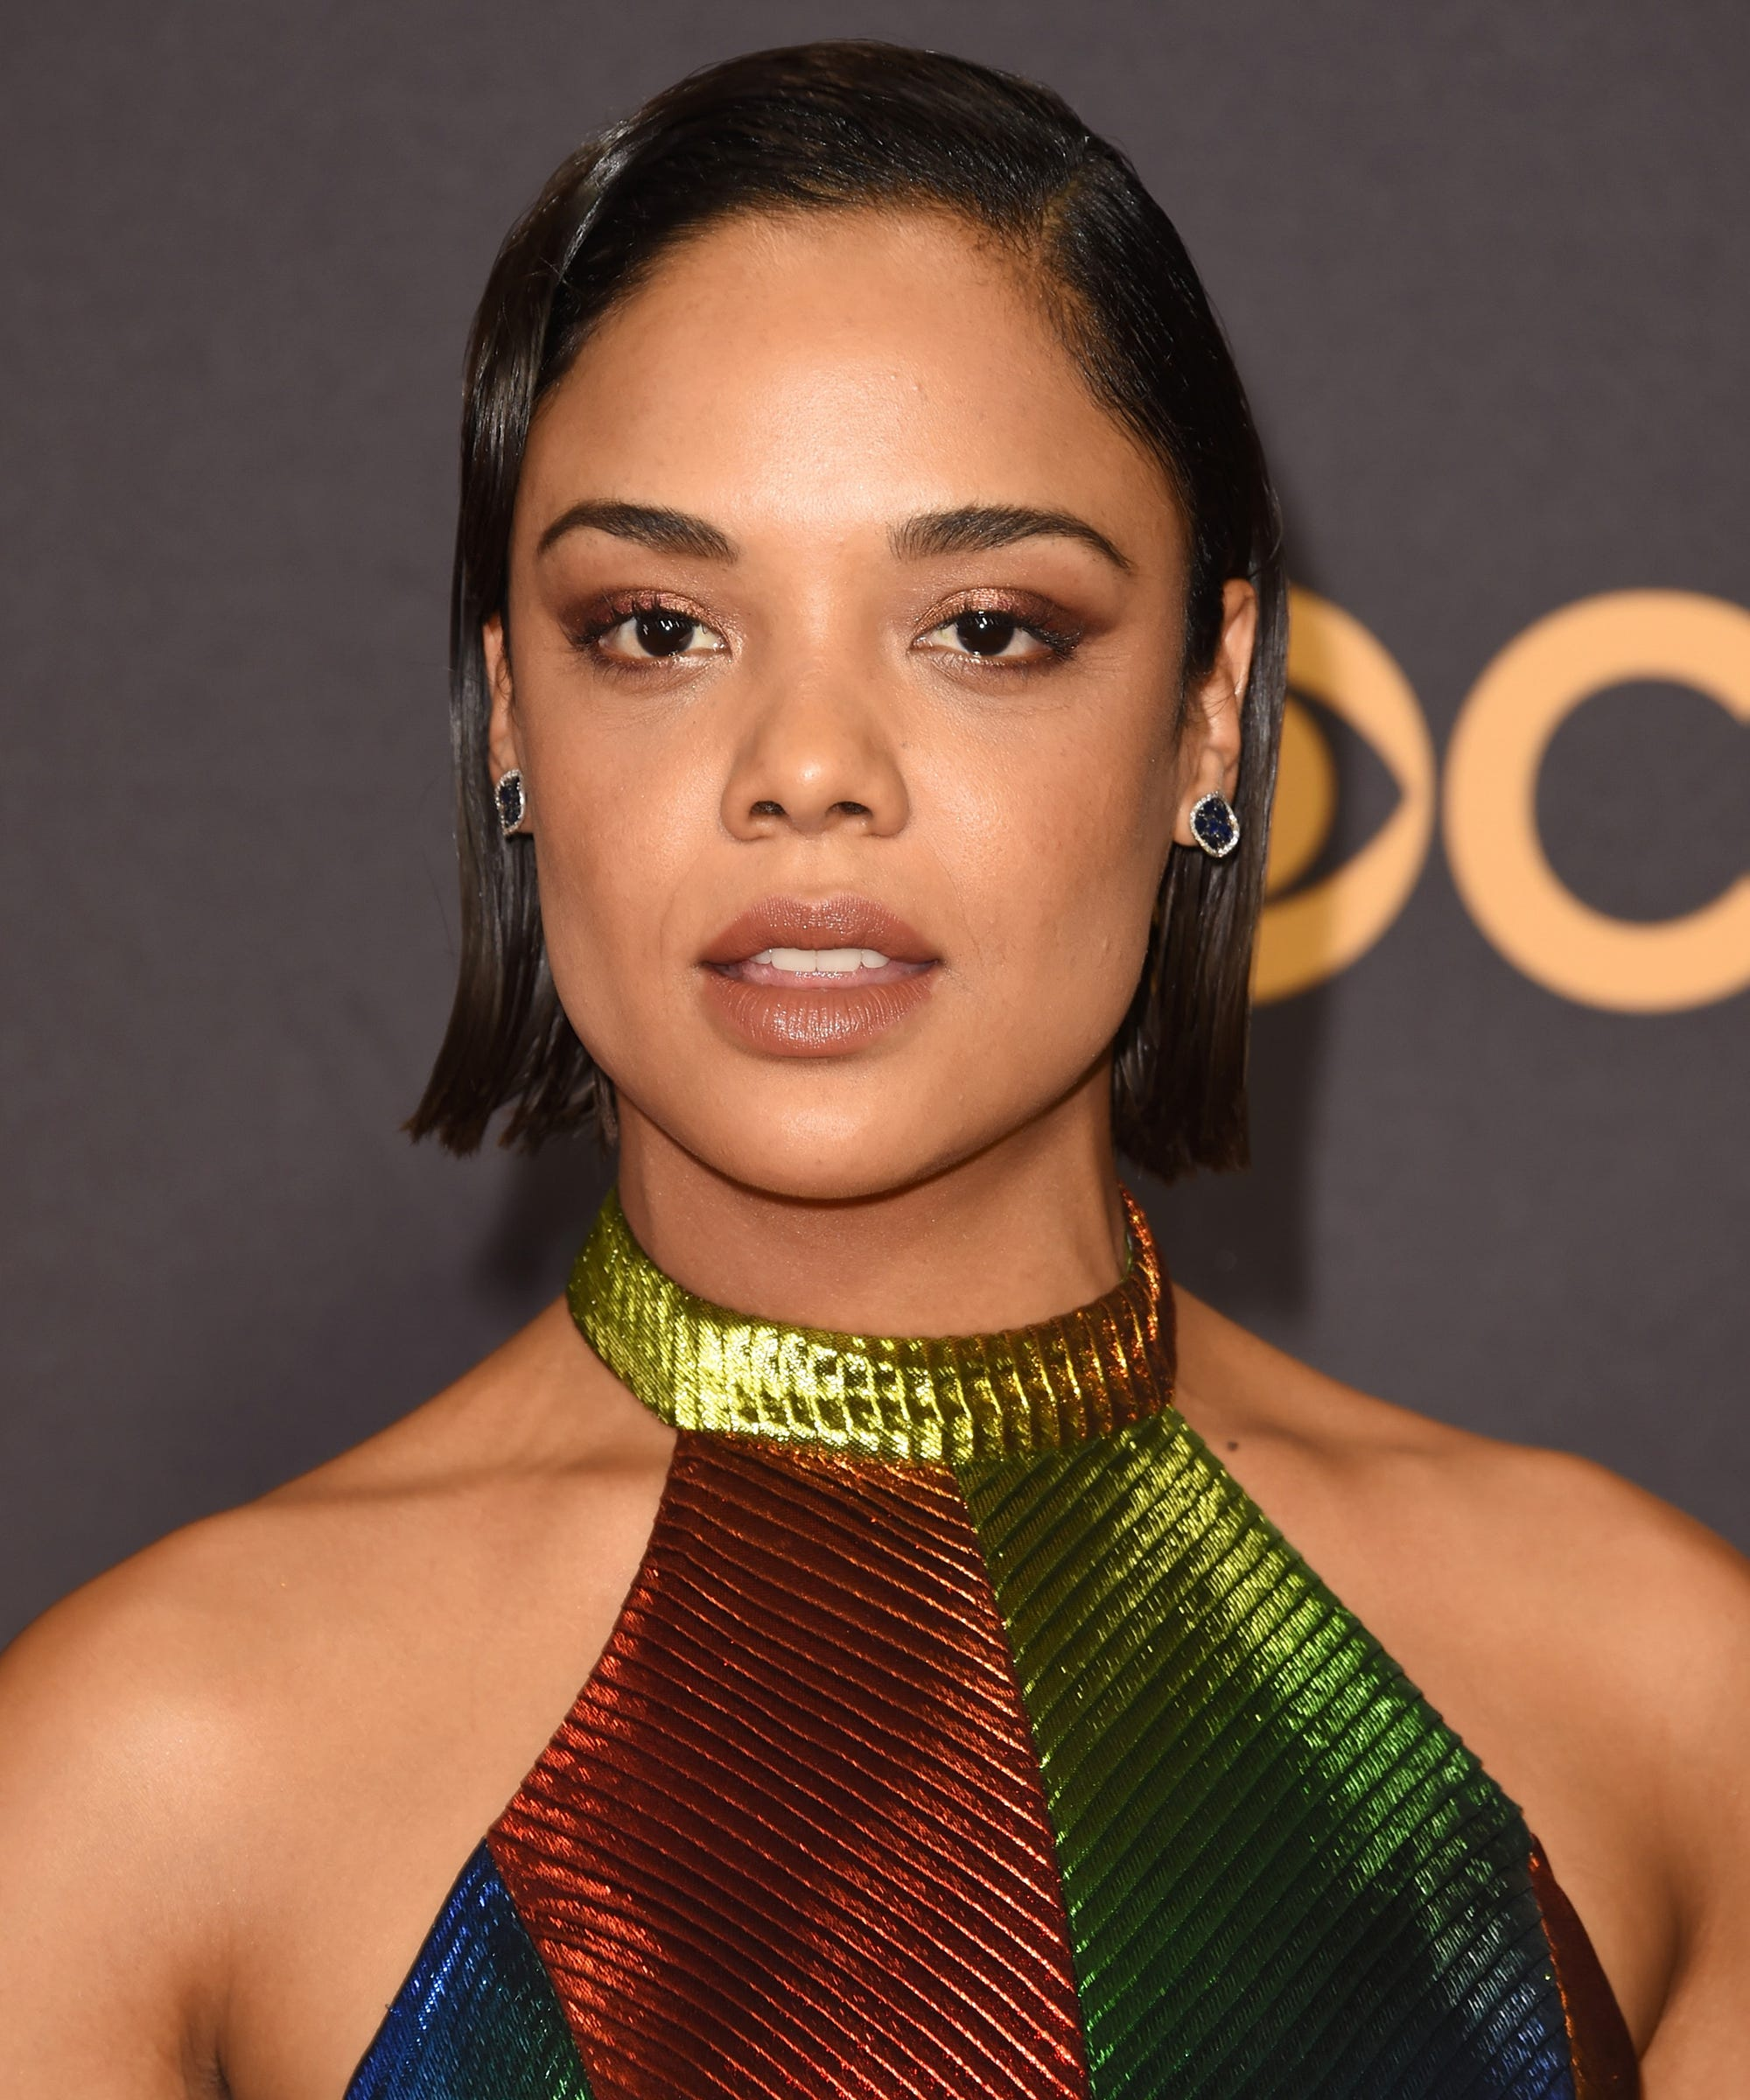 Forum on this topic: Mathilde frachon swimsuit, tessa-thompson-met-gala-makeup-close-up/